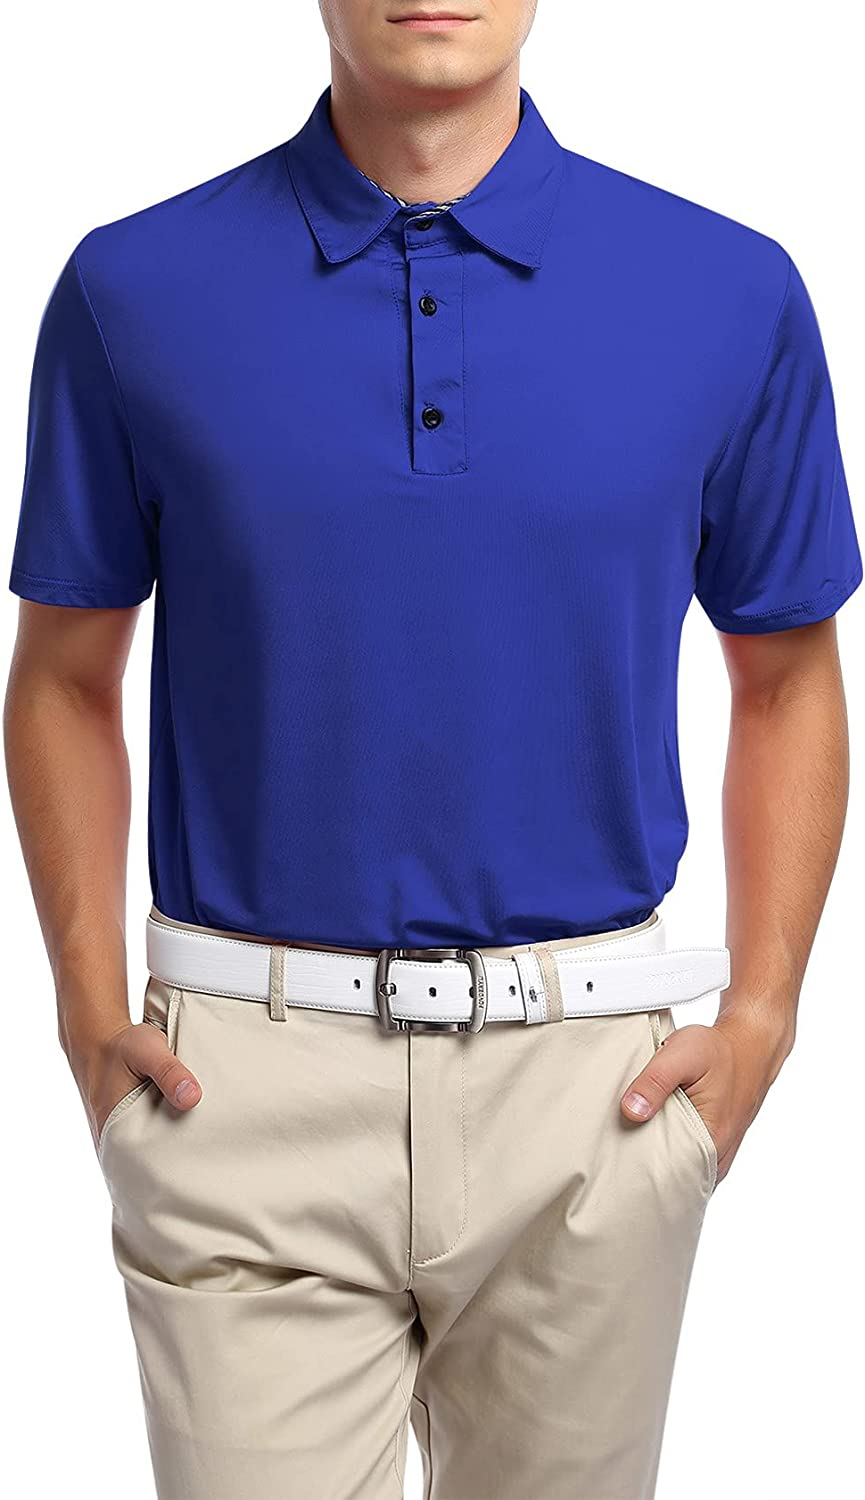 Yong Popularity Horse Men's Dry Fit Golf Sleeve Shirt Max 71% OFF Col Polo Short Casual